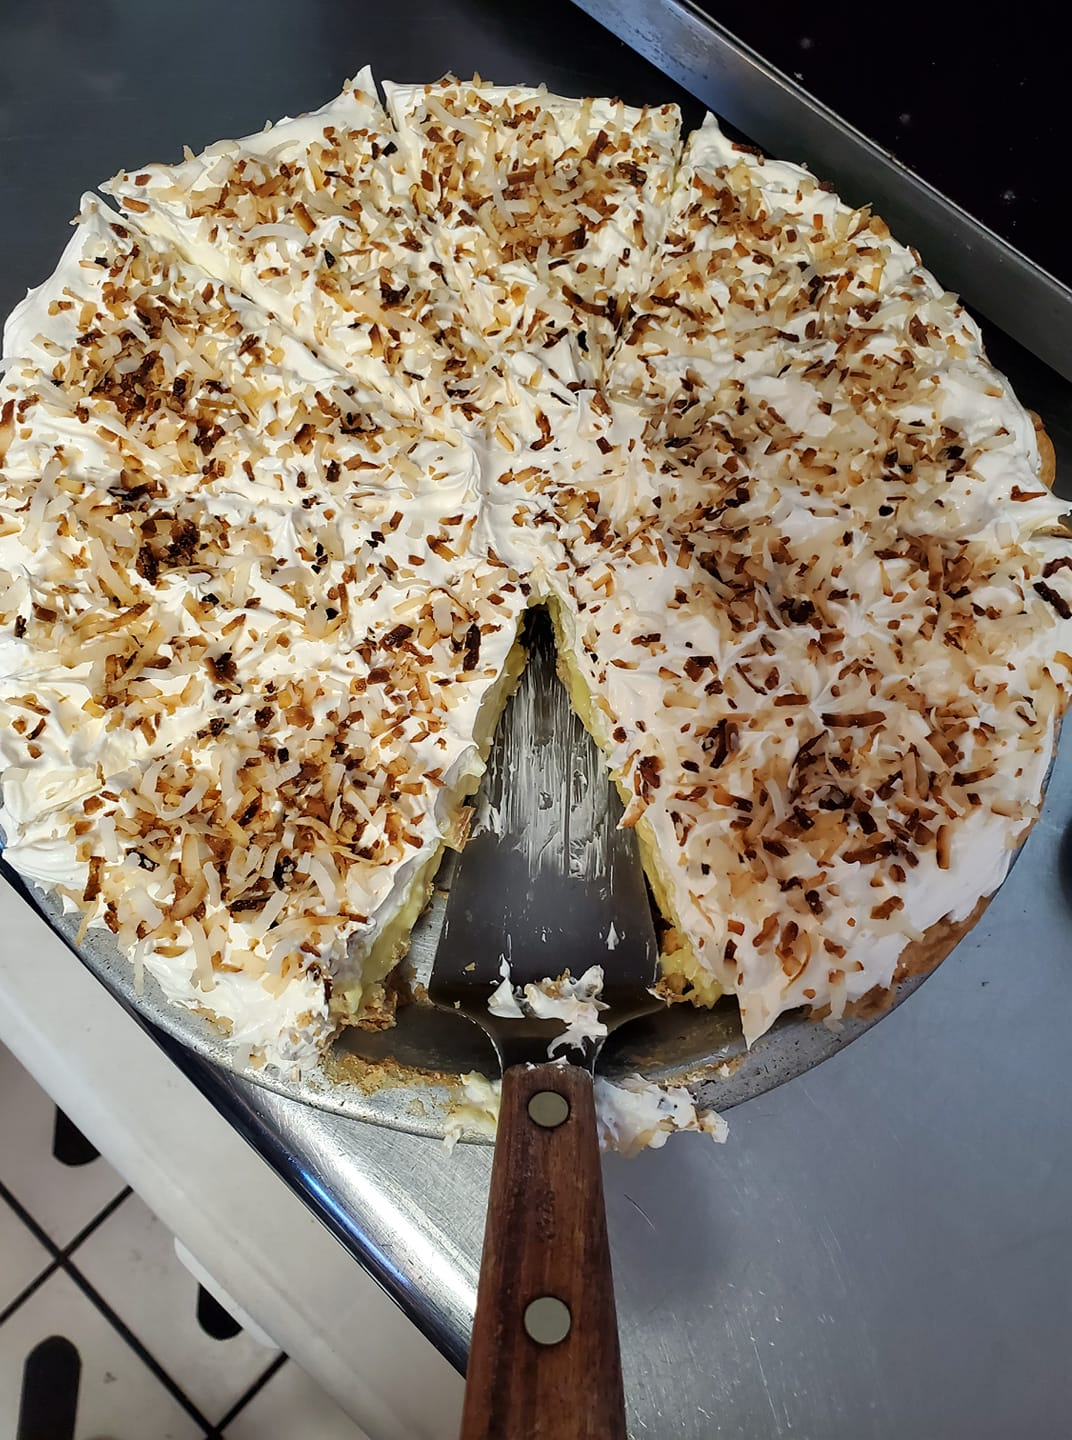 Coconut cake with serving spoon